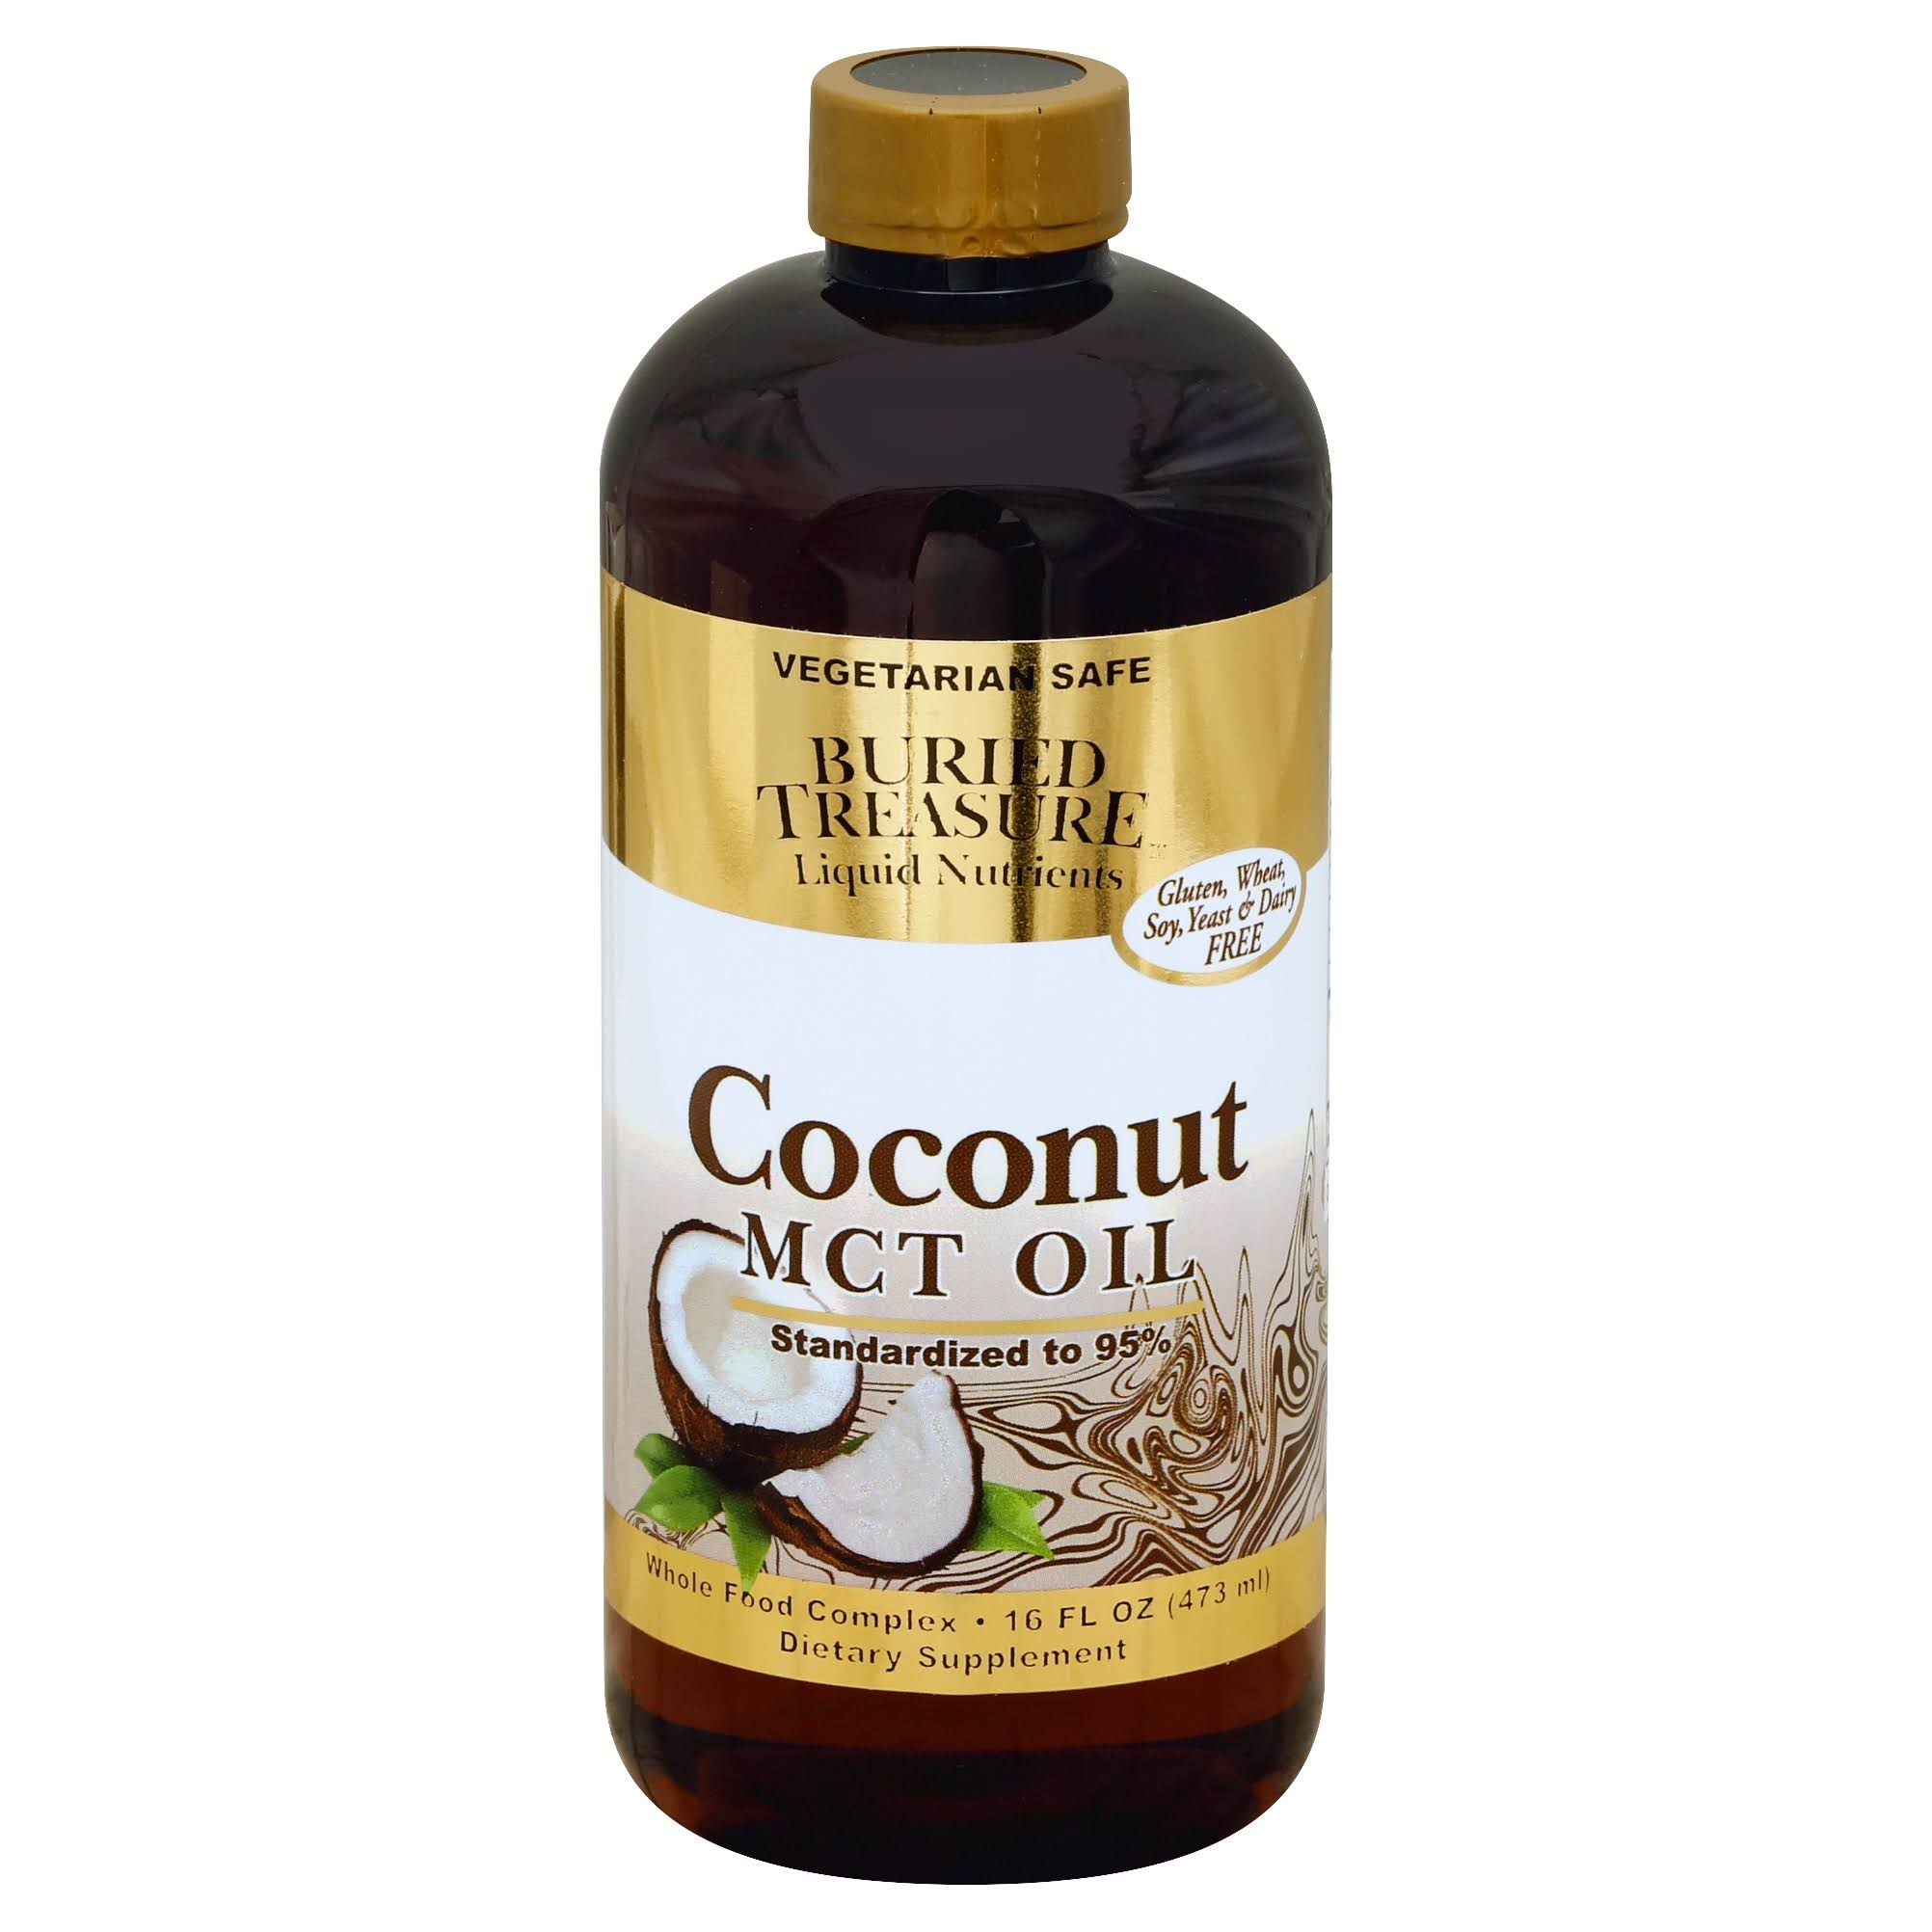 Buried Treasure Coconut MCT Oil - 16 oz